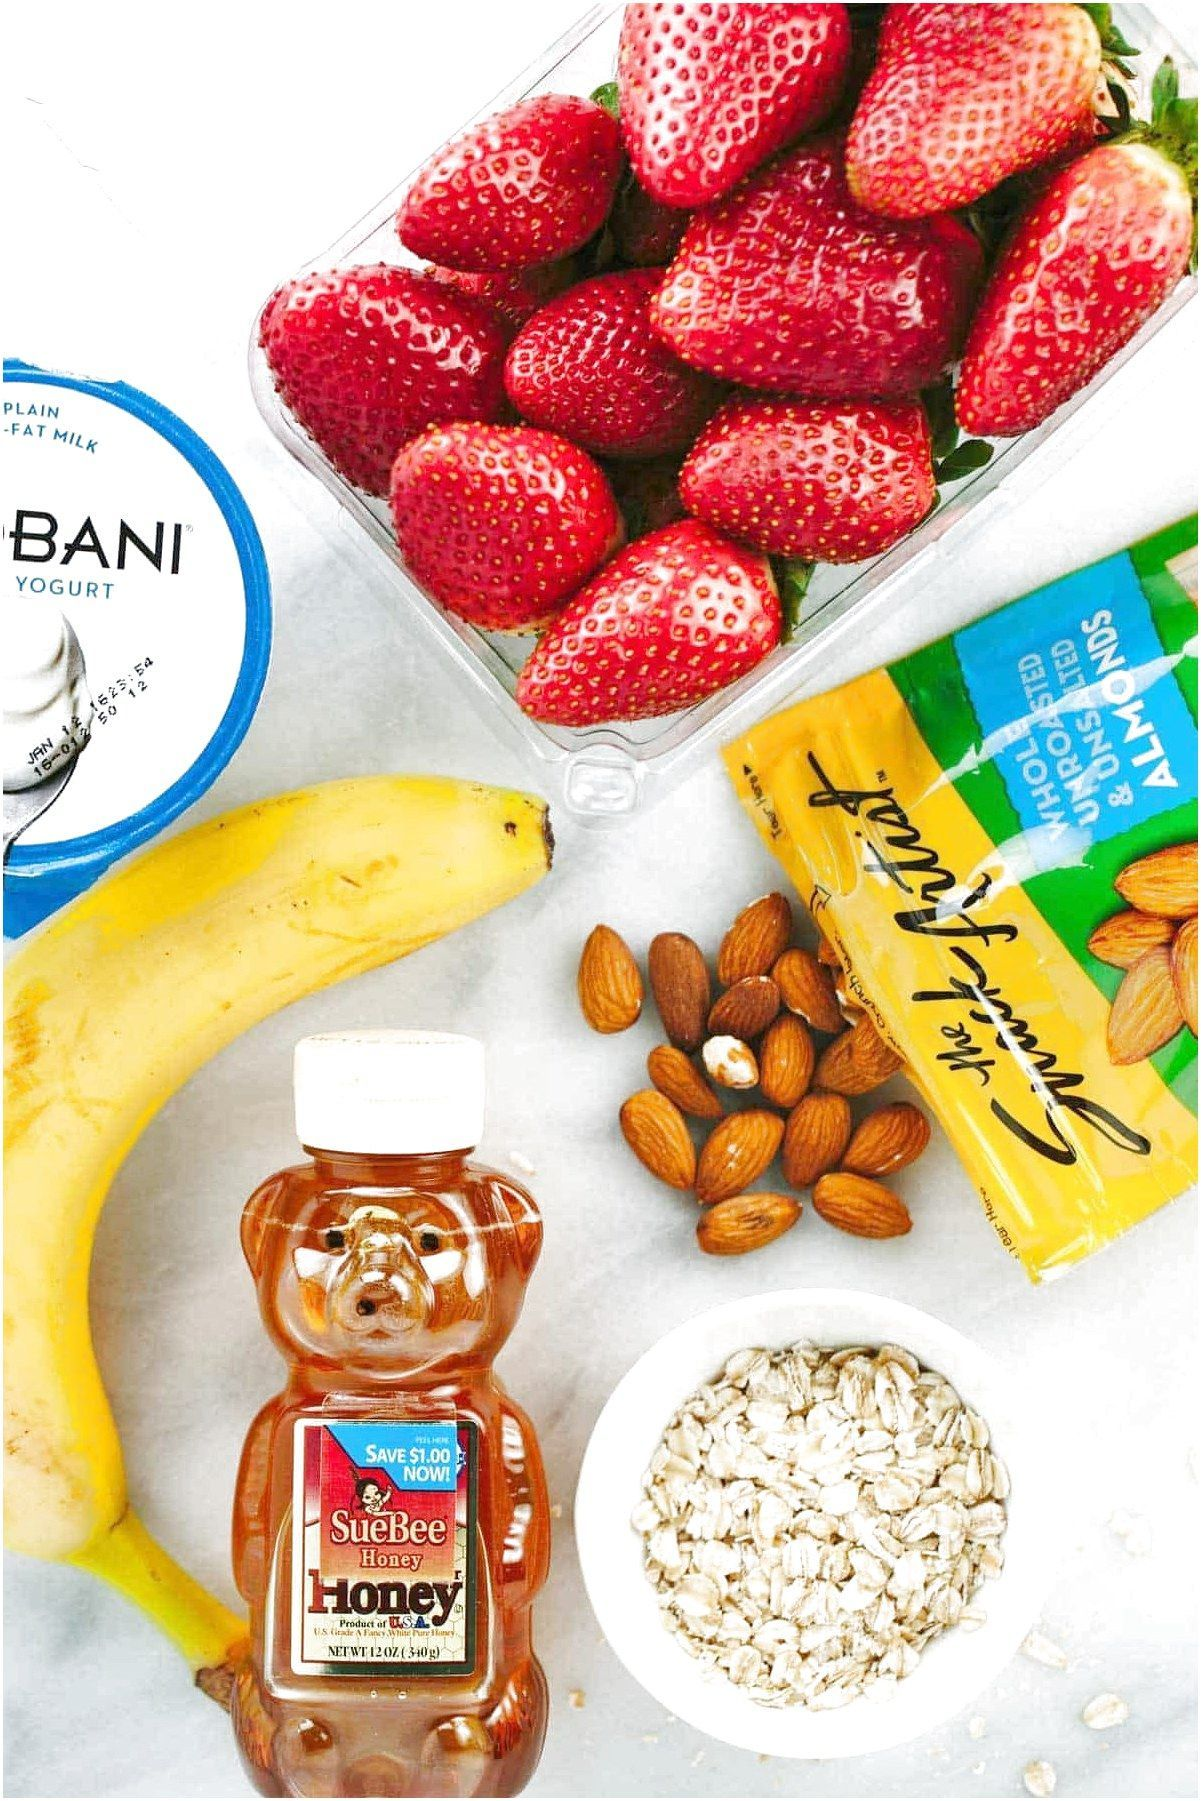 Here are the ingredients for a healthy strawberry banana smoothie with oats almonds and yogurt  jessicagavincom #WeightLossSmoothies Click the image for more info.. #healthystrawberrybananasmoothie Here are the ingredients for a healthy strawberry banana smoothie with oats almonds and yogurt  jessicagavincom #WeightLossSmoothies Click the image for more info.. #healthystrawberrybananasmoothie